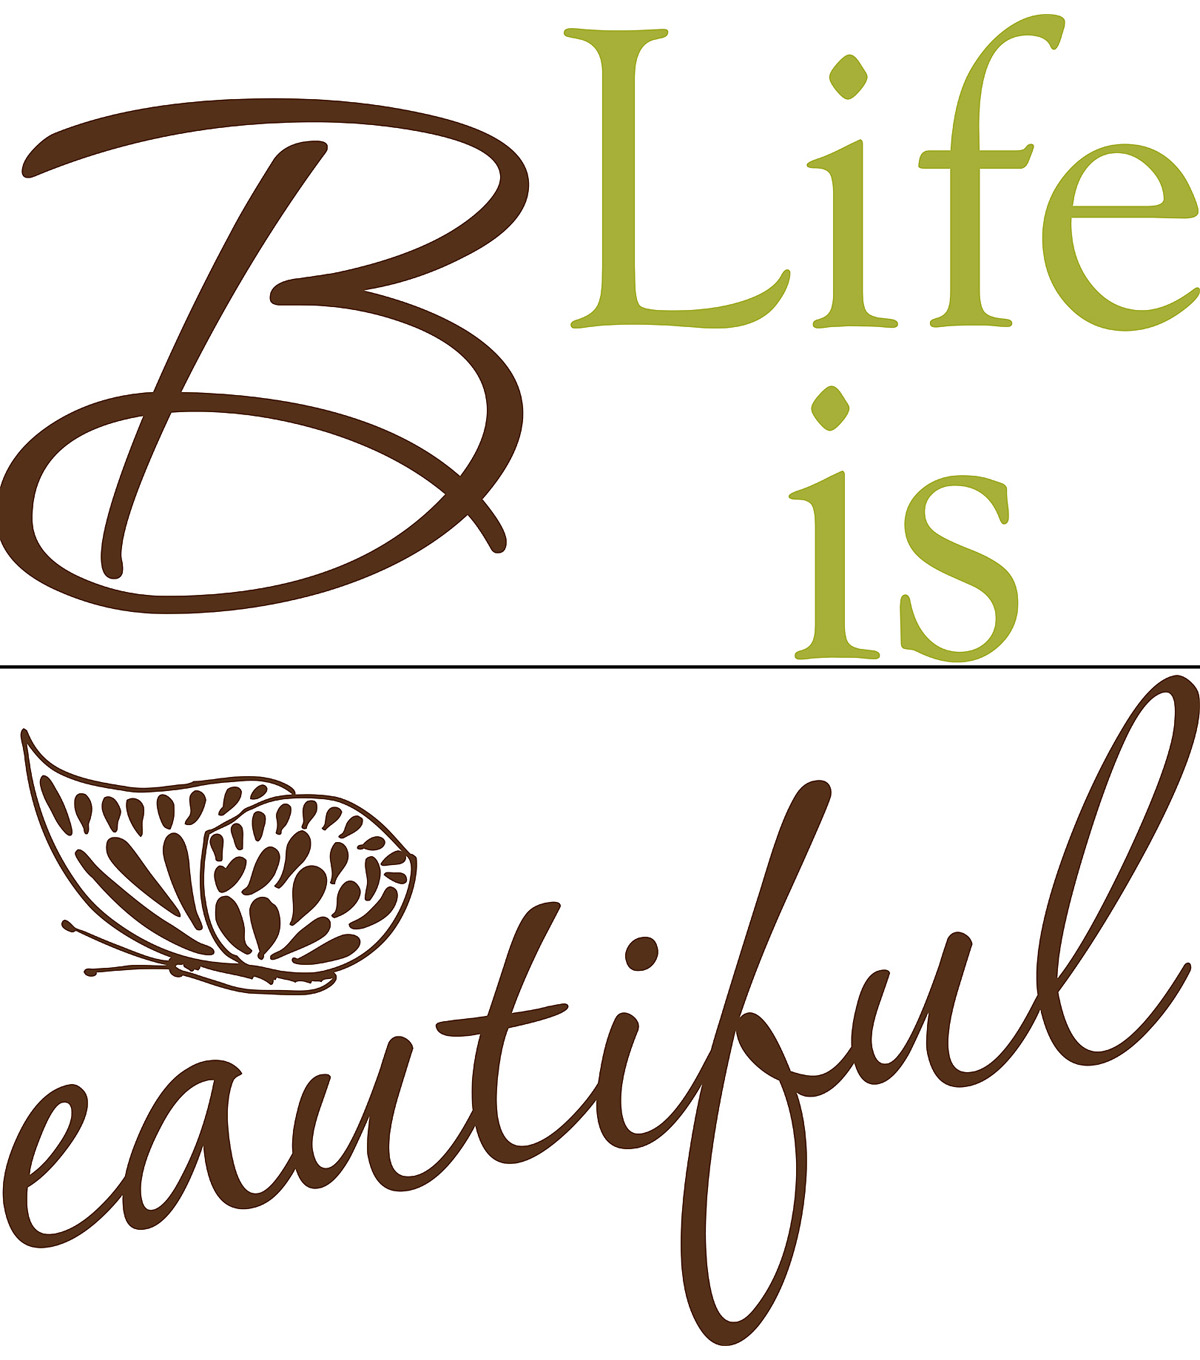 Wall Pops Life is Beautiful Wall Quote Decals, 24.5\u0022 x 13.5\u0022